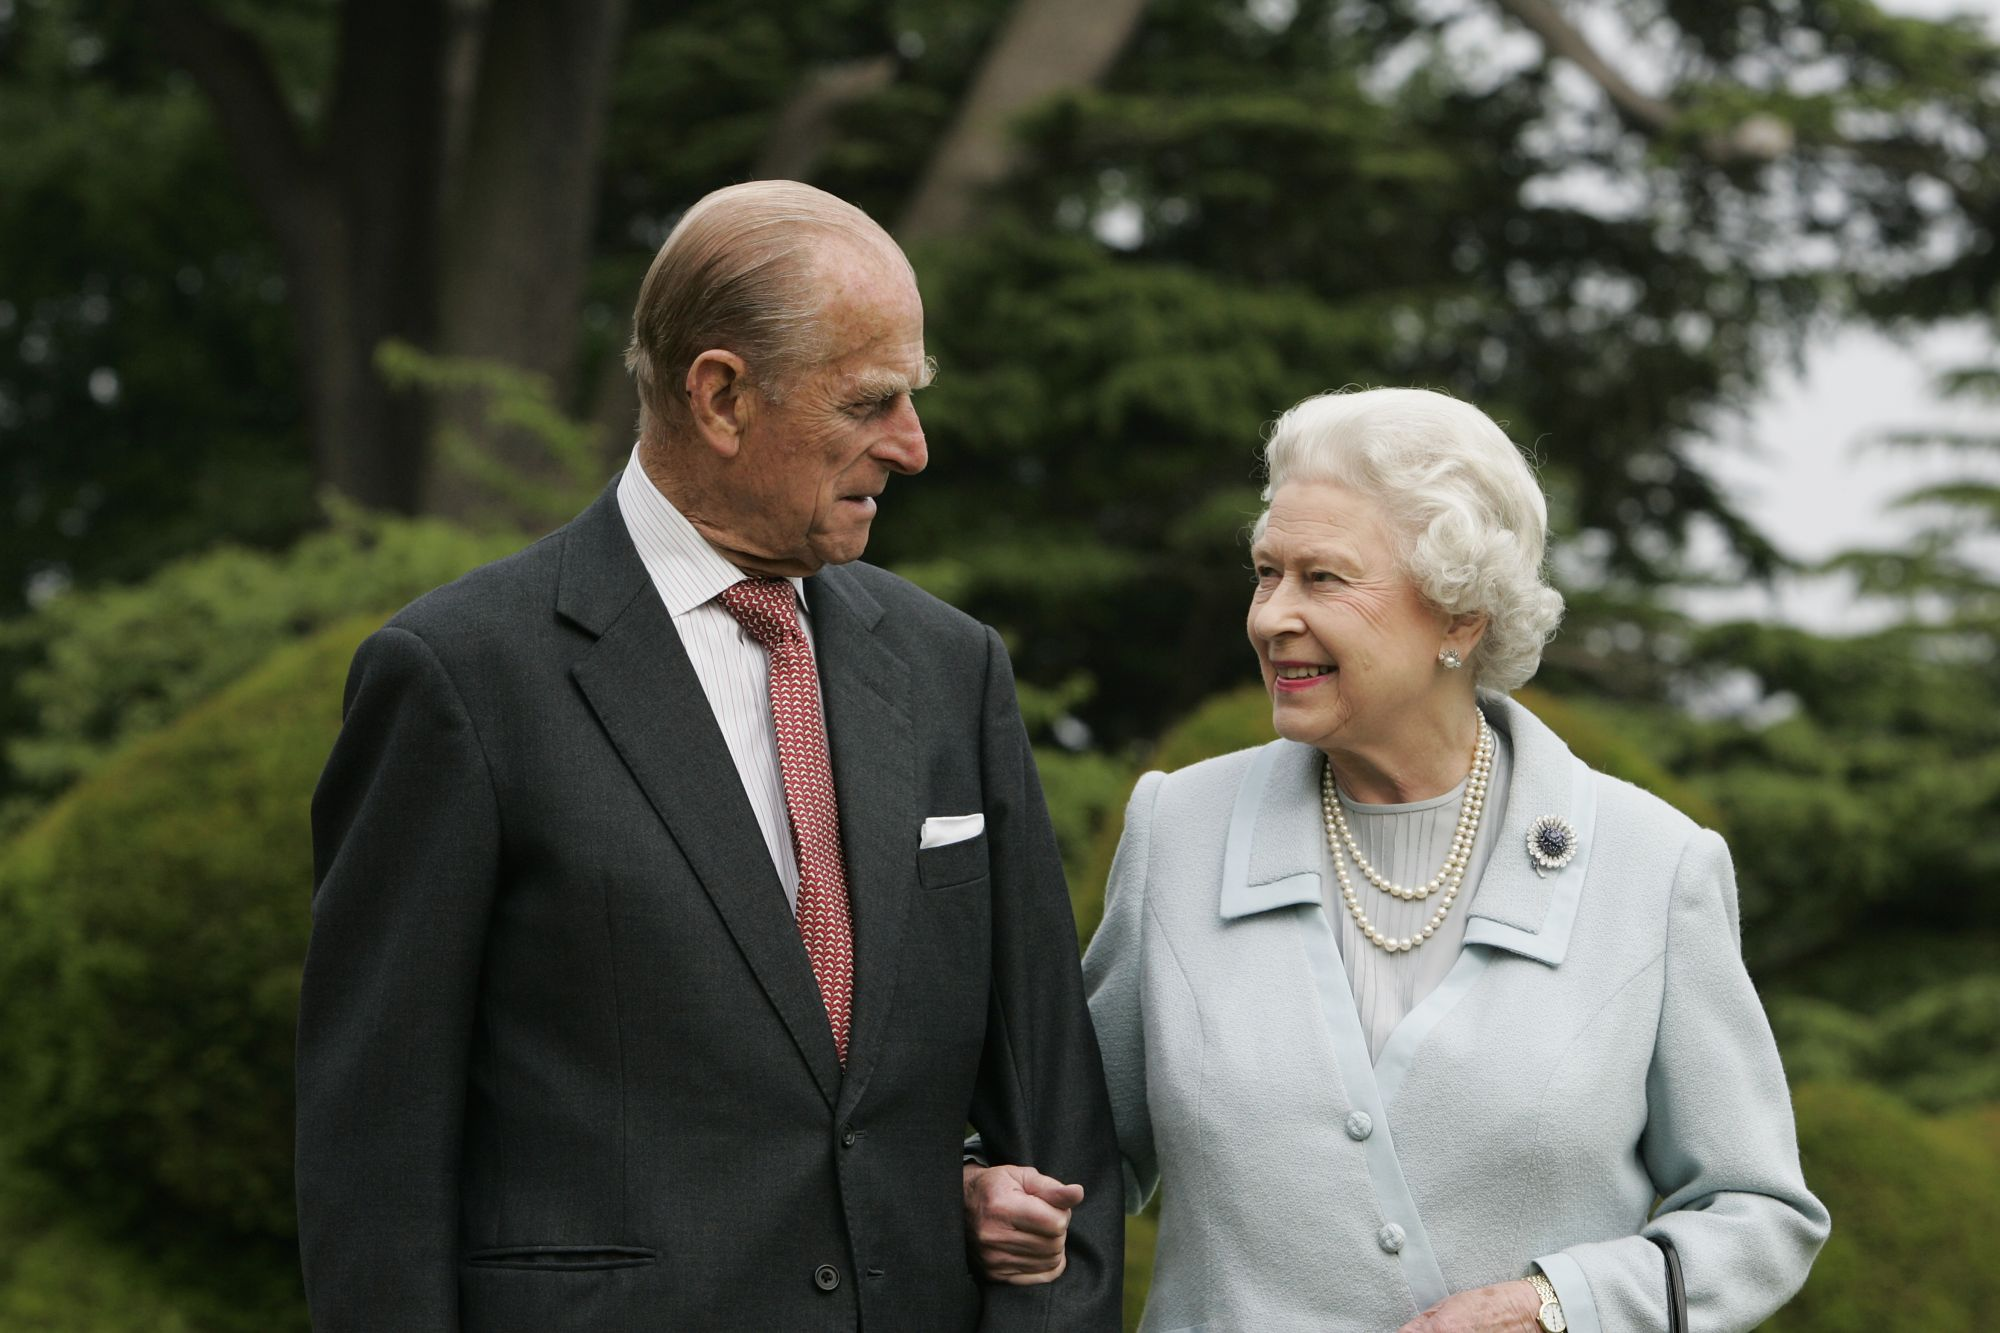 HAMPSHIRE, ENGLAND - UNDATED: In this image, made available November 18, 2007, HM The Queen Elizabeth II and Prince Philip, The Duke of Edinburgh re-visit Broadlands,  to mark their Diamond Wedding Anniversary on November 20. The royals spent their wedding night at Broadlands in Hampshire in November 1947,  the former home of Prince Philip's uncle, Earl Mountbatten. (Photo by Tim Graham/Getty Images)